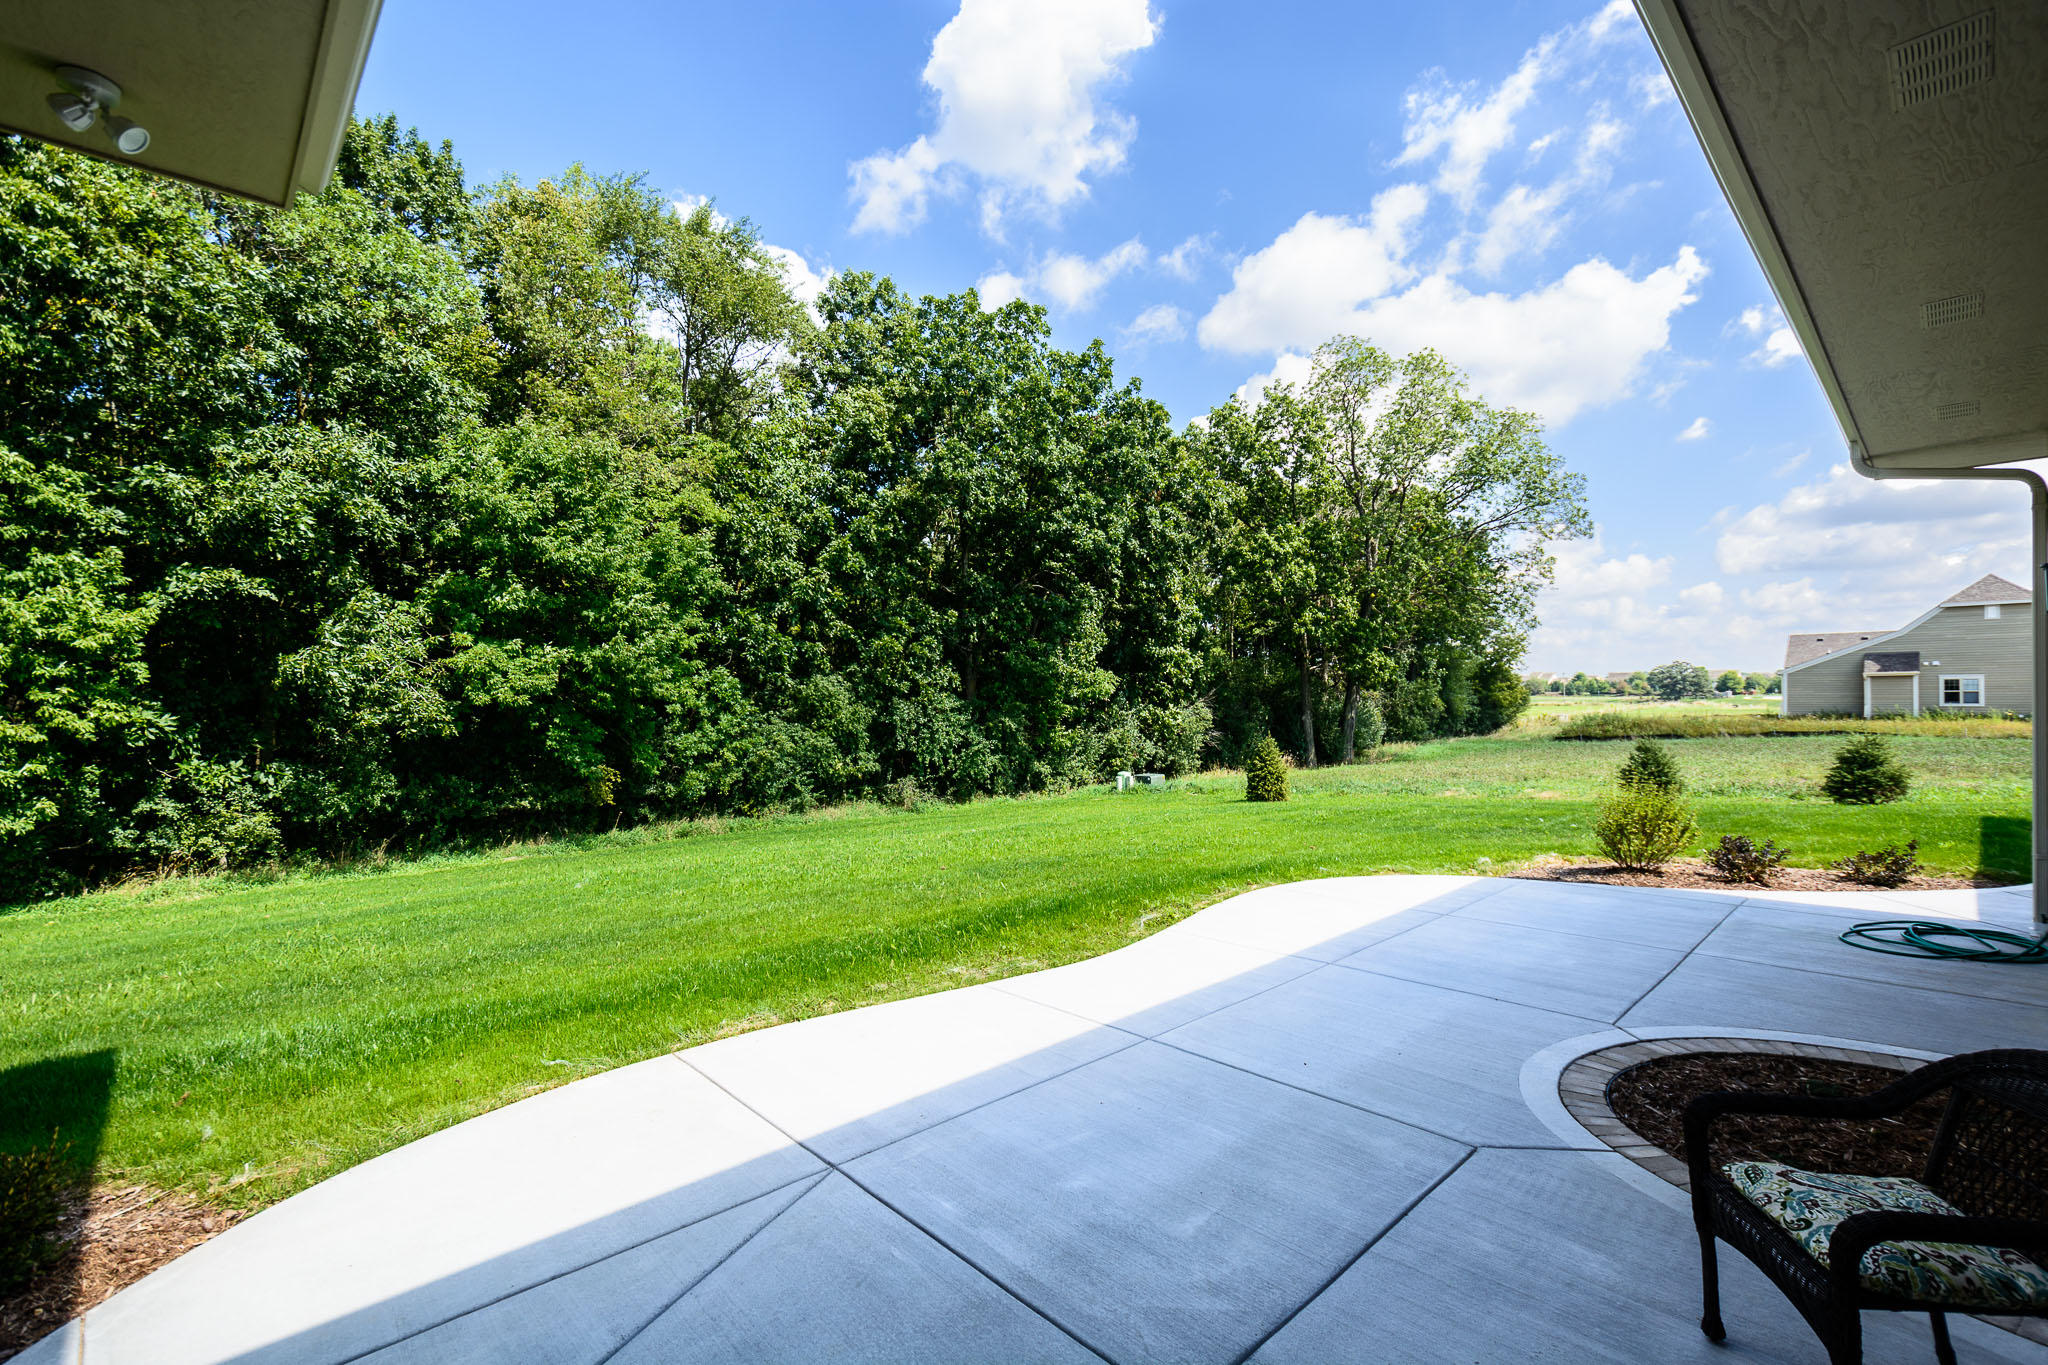 240 Four Winds Ct, Hartland, Wisconsin 53029, 4 Bedrooms Bedrooms, 12 Rooms Rooms,3 BathroomsBathrooms,Single-Family,For Sale,Four Winds Ct,1618846